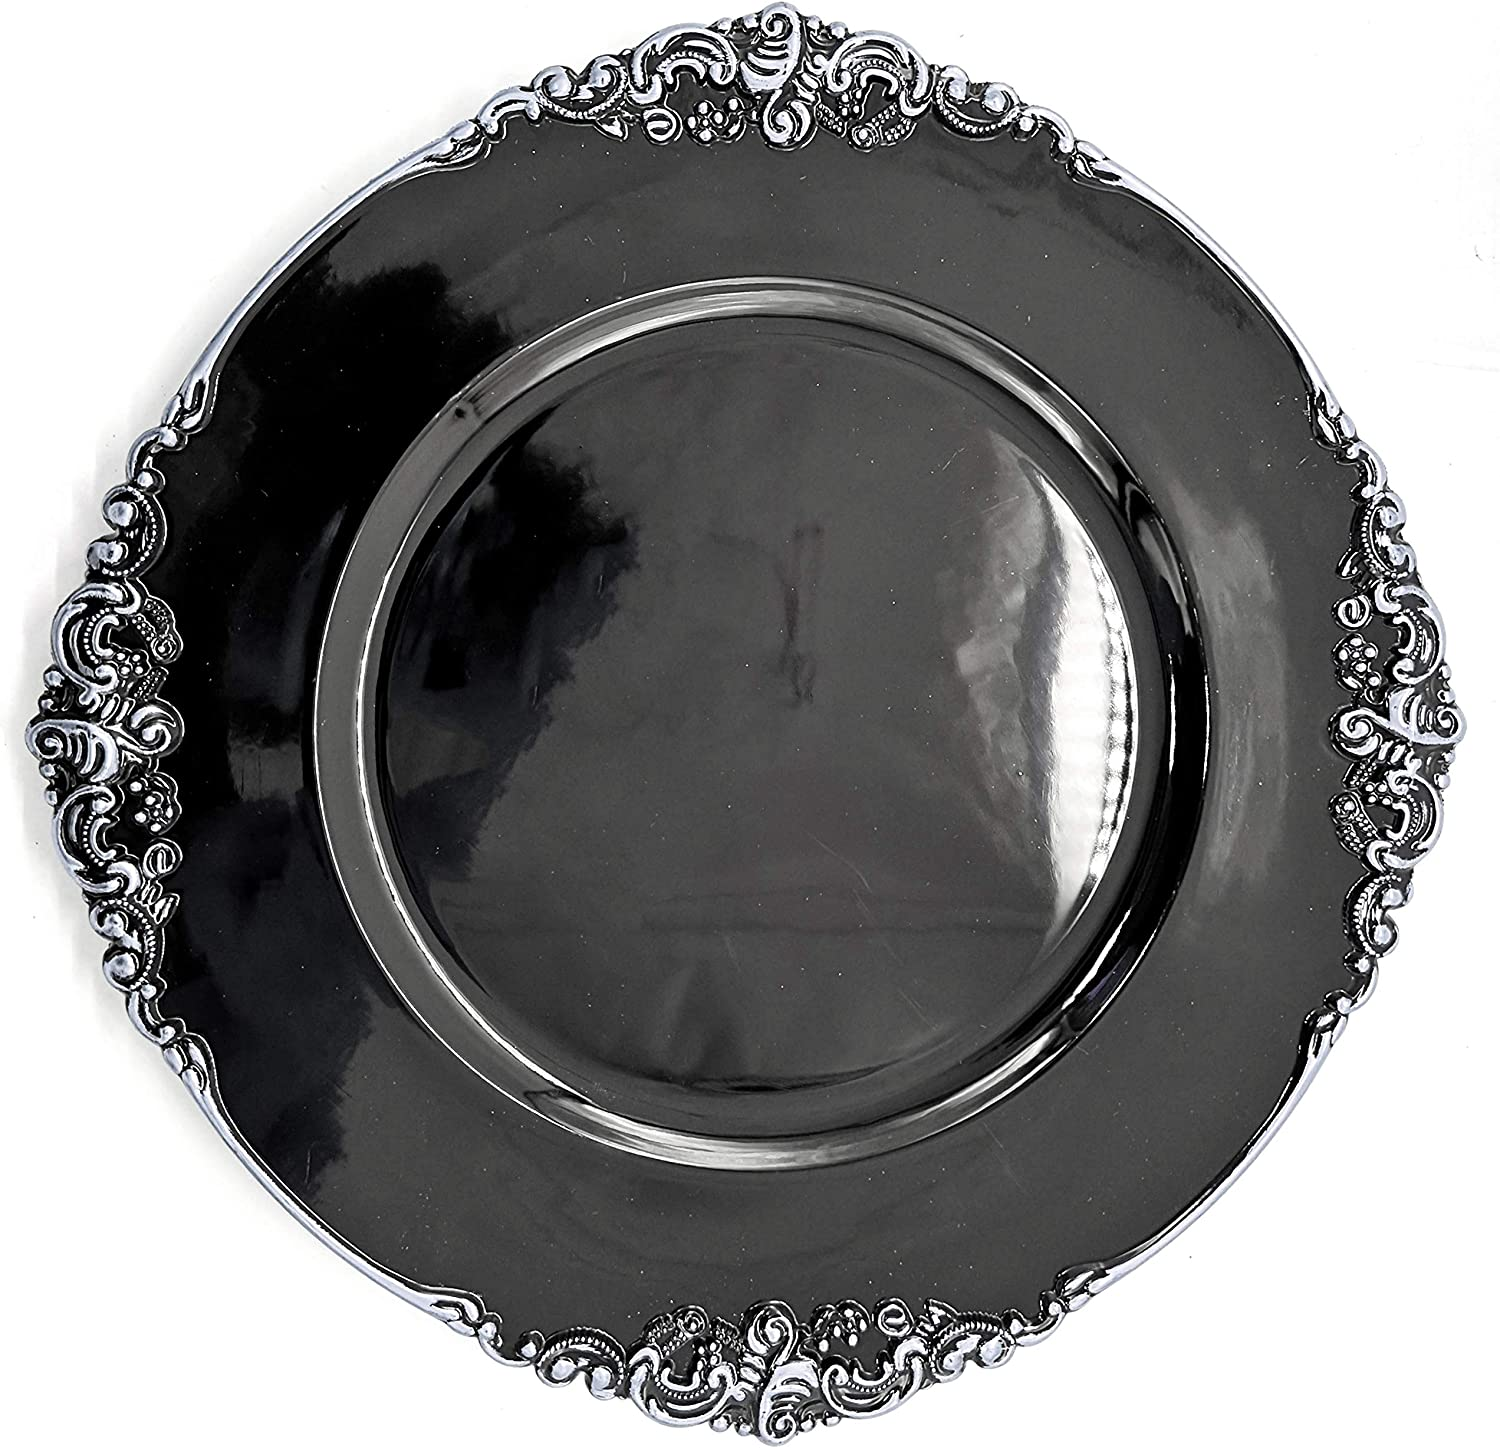 Allgala 13-Inch 6-Pack Heavy Round Fees free!! Quality Charger Classic Plates-Floral